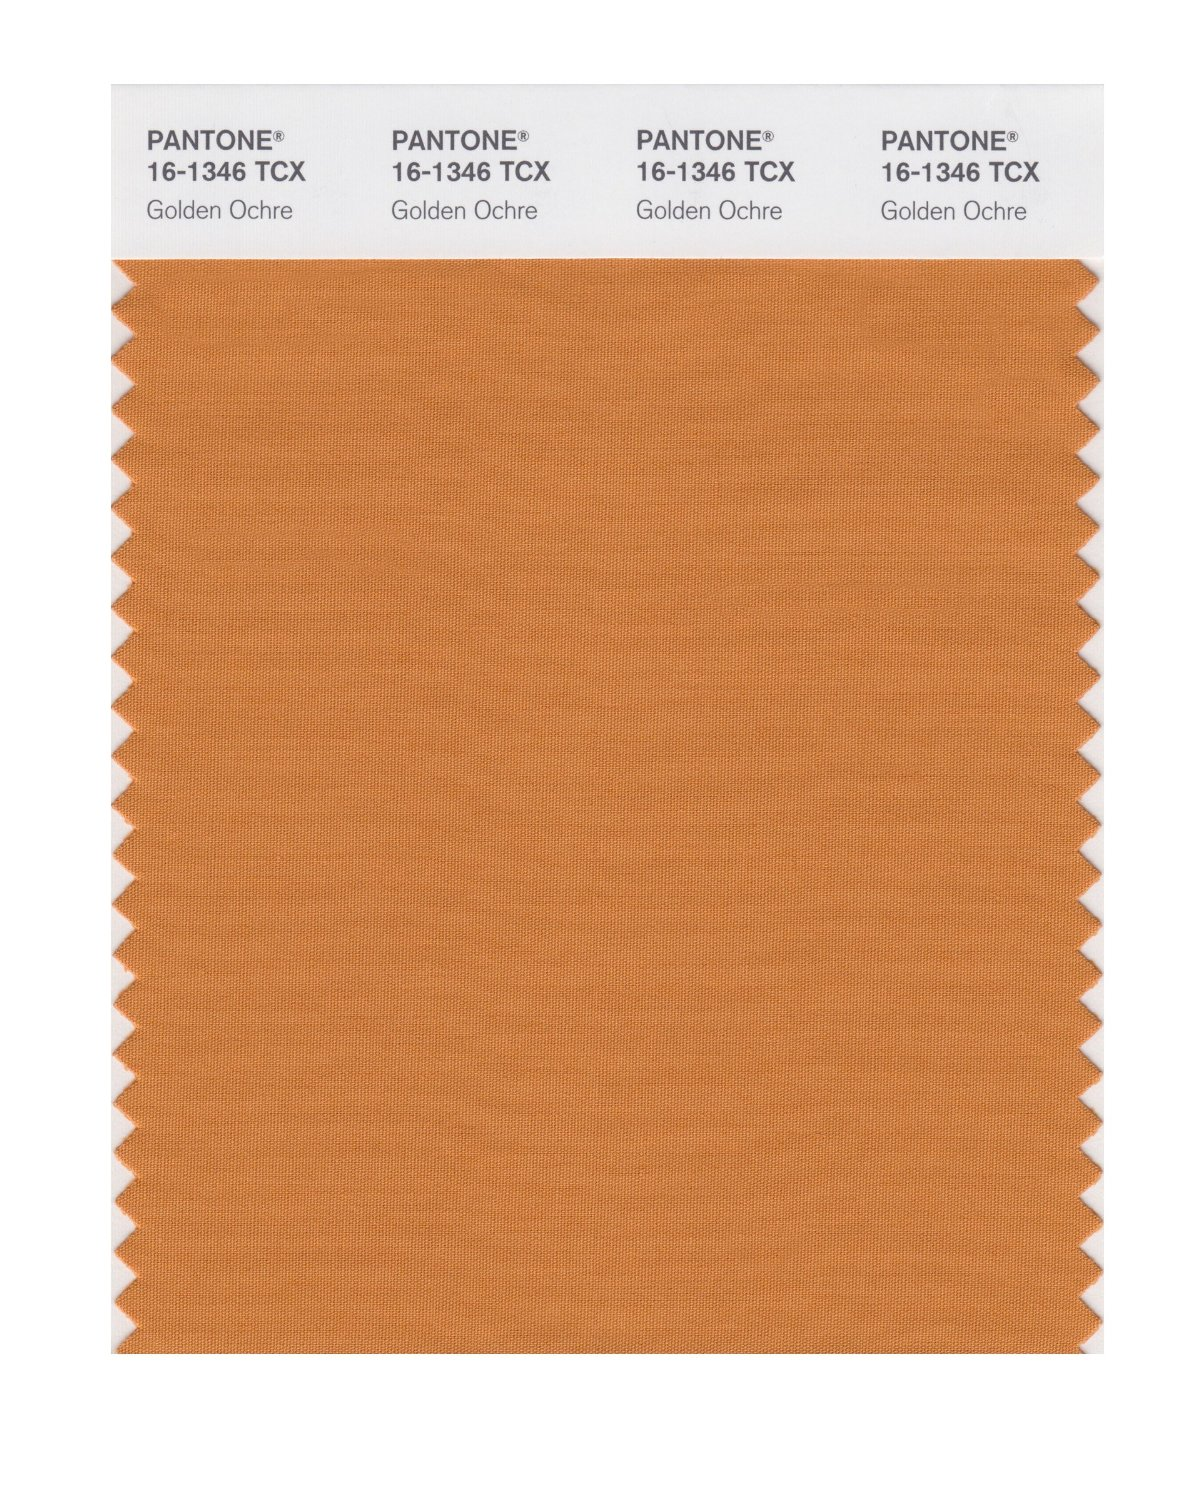 Pantone Smart Swatch 16-1346 Golden Ochre